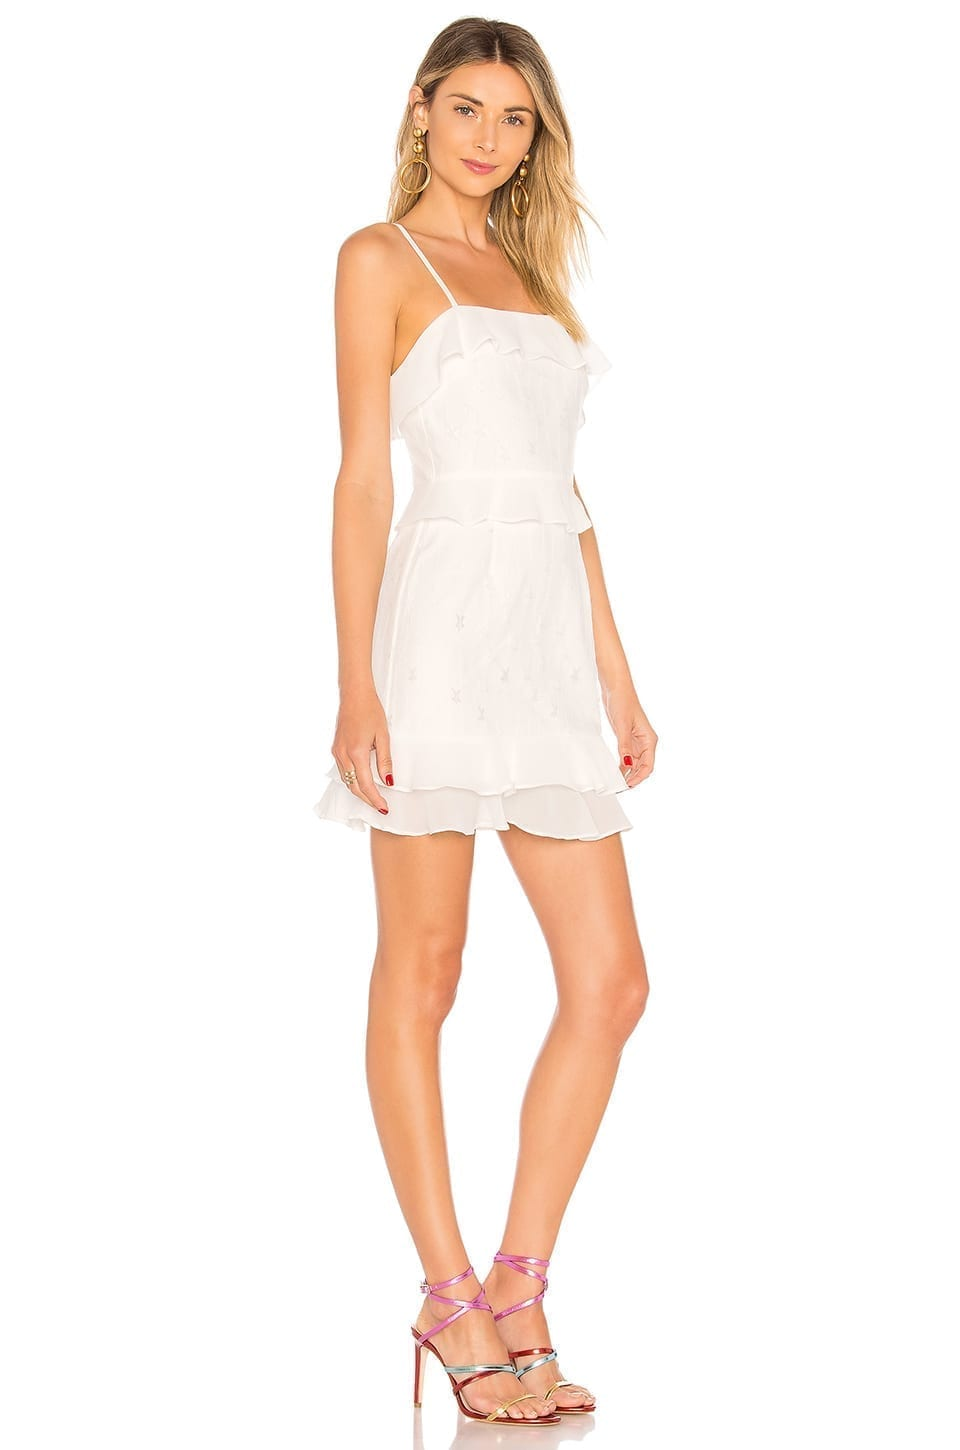 Revolve Brinley Ruffle White Star Dress We Select Dresses